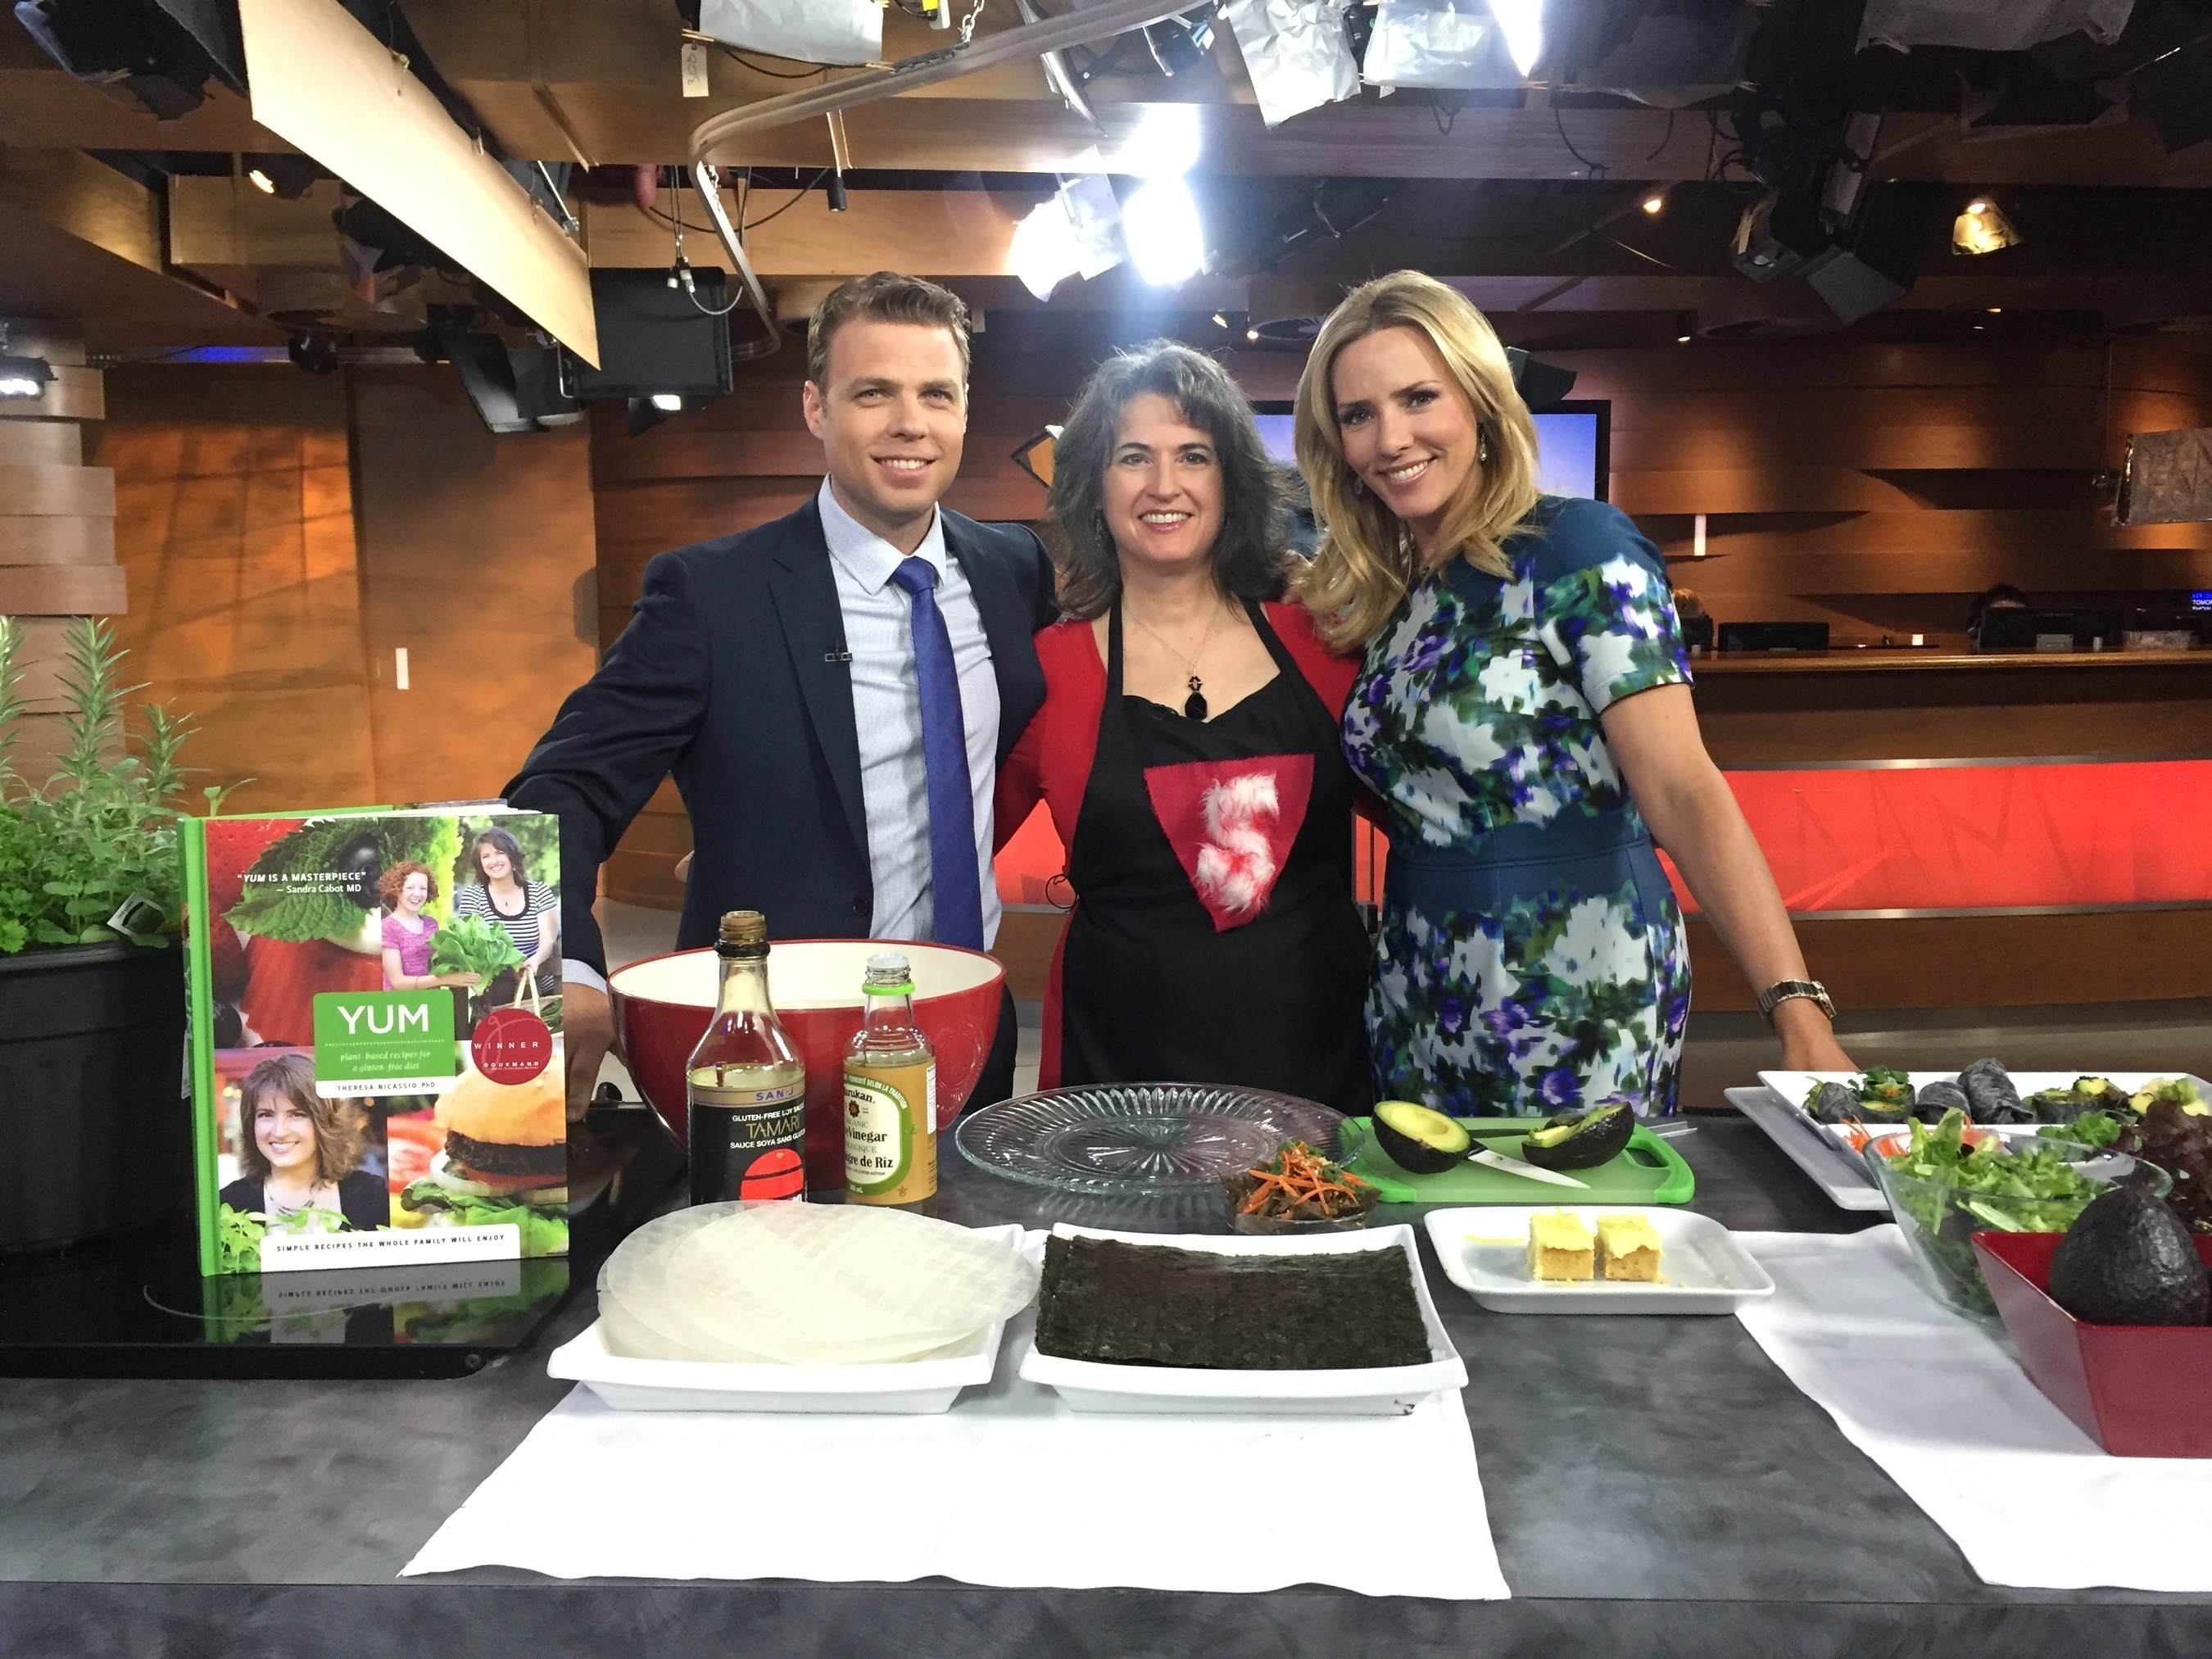 Dr. Theresa Nicassio Featured on CTV Morning Live Talking about YUM & Edible Gardening